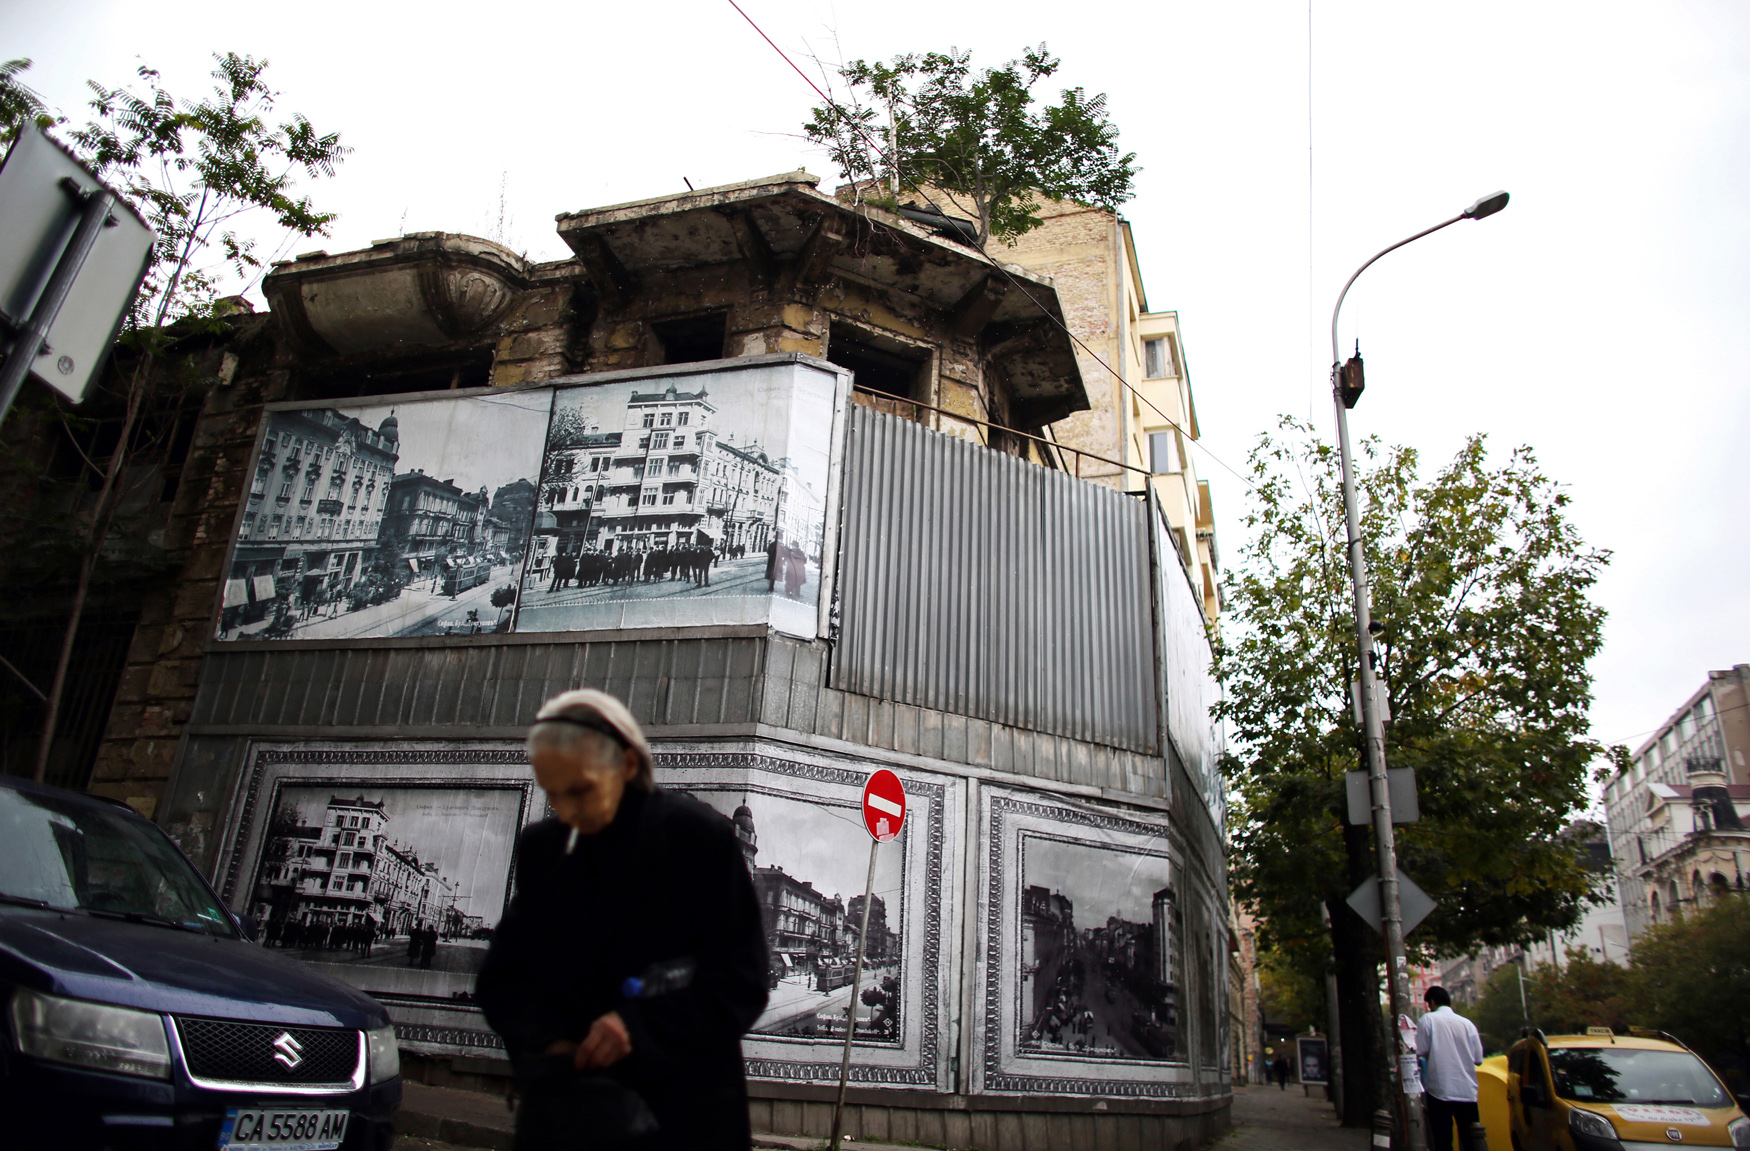 A woman walks by an abandoned building clad in street scenes of Bulgaria's capital, Sofia, on October 5th, 2014. The European Union intermittently cuts off financial aid to the country when faced with mounting evidence of misappropriated funds, meant for construction and renovation. A recent finding by Study for Democracy, a Sofia-based think tank, labeled the country's level of corruption at its highest in 15 years, across civil and political sectors alike.